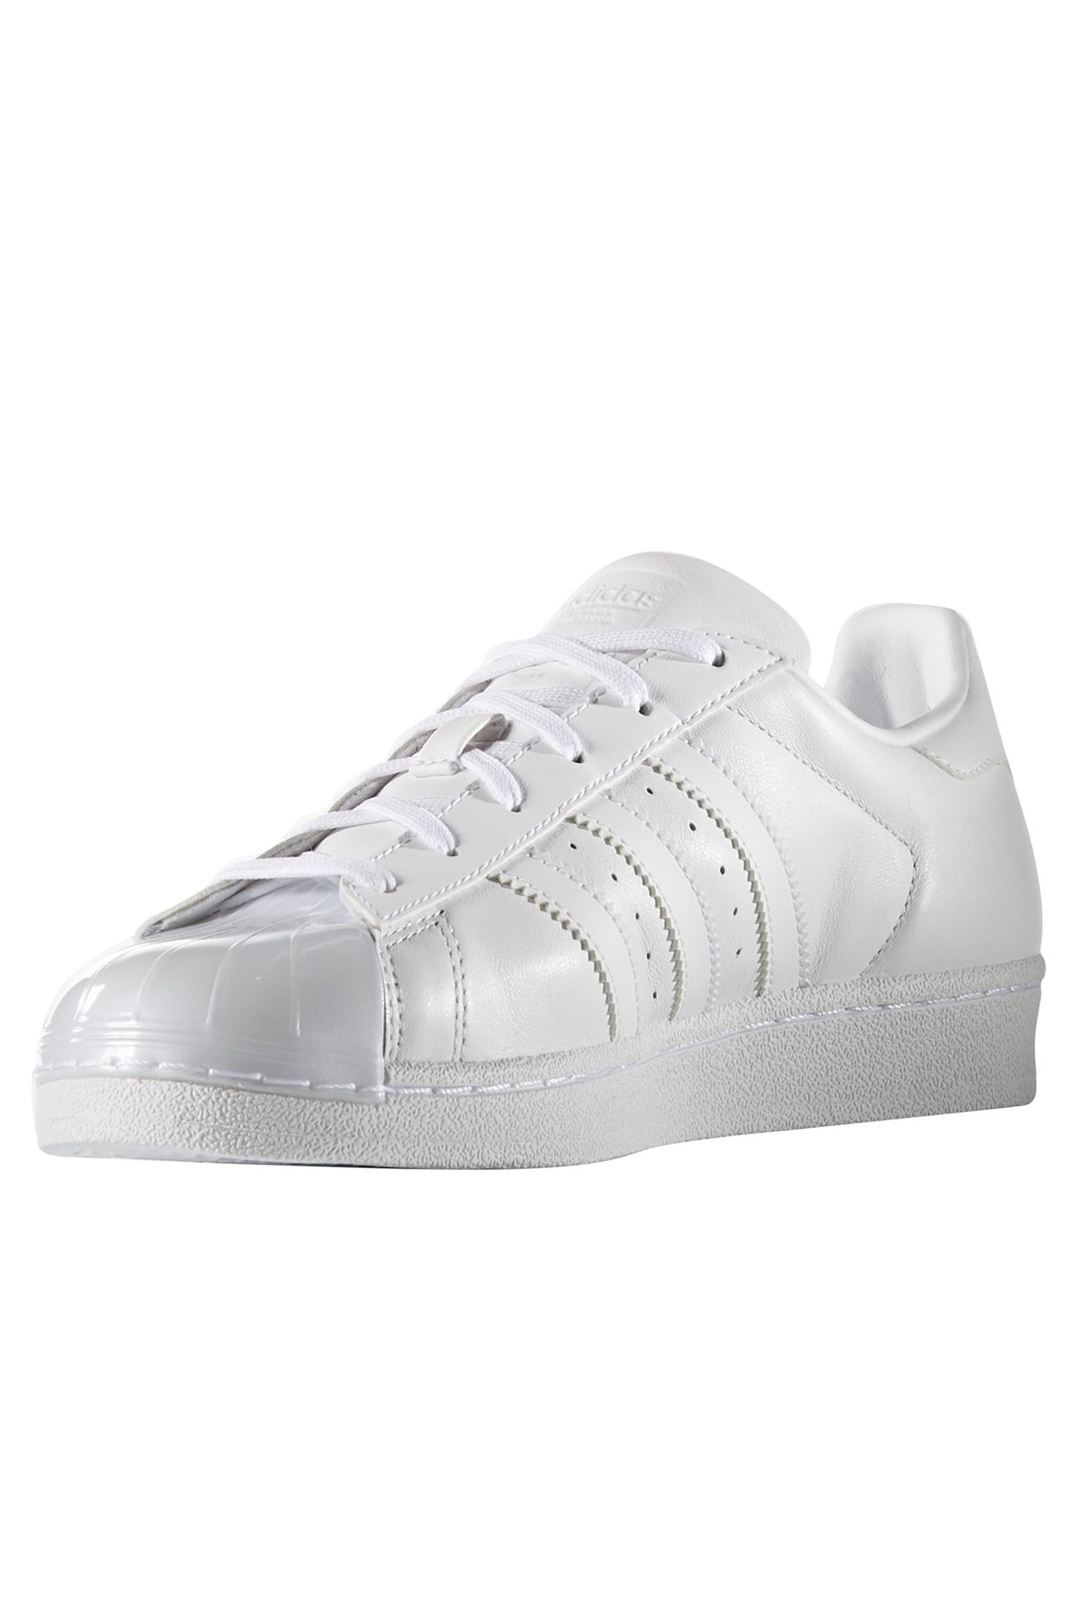 ADIDAS ORIGINAL BB0683 SUPERSTAR GLOSSY TOE W BLANC FEMME